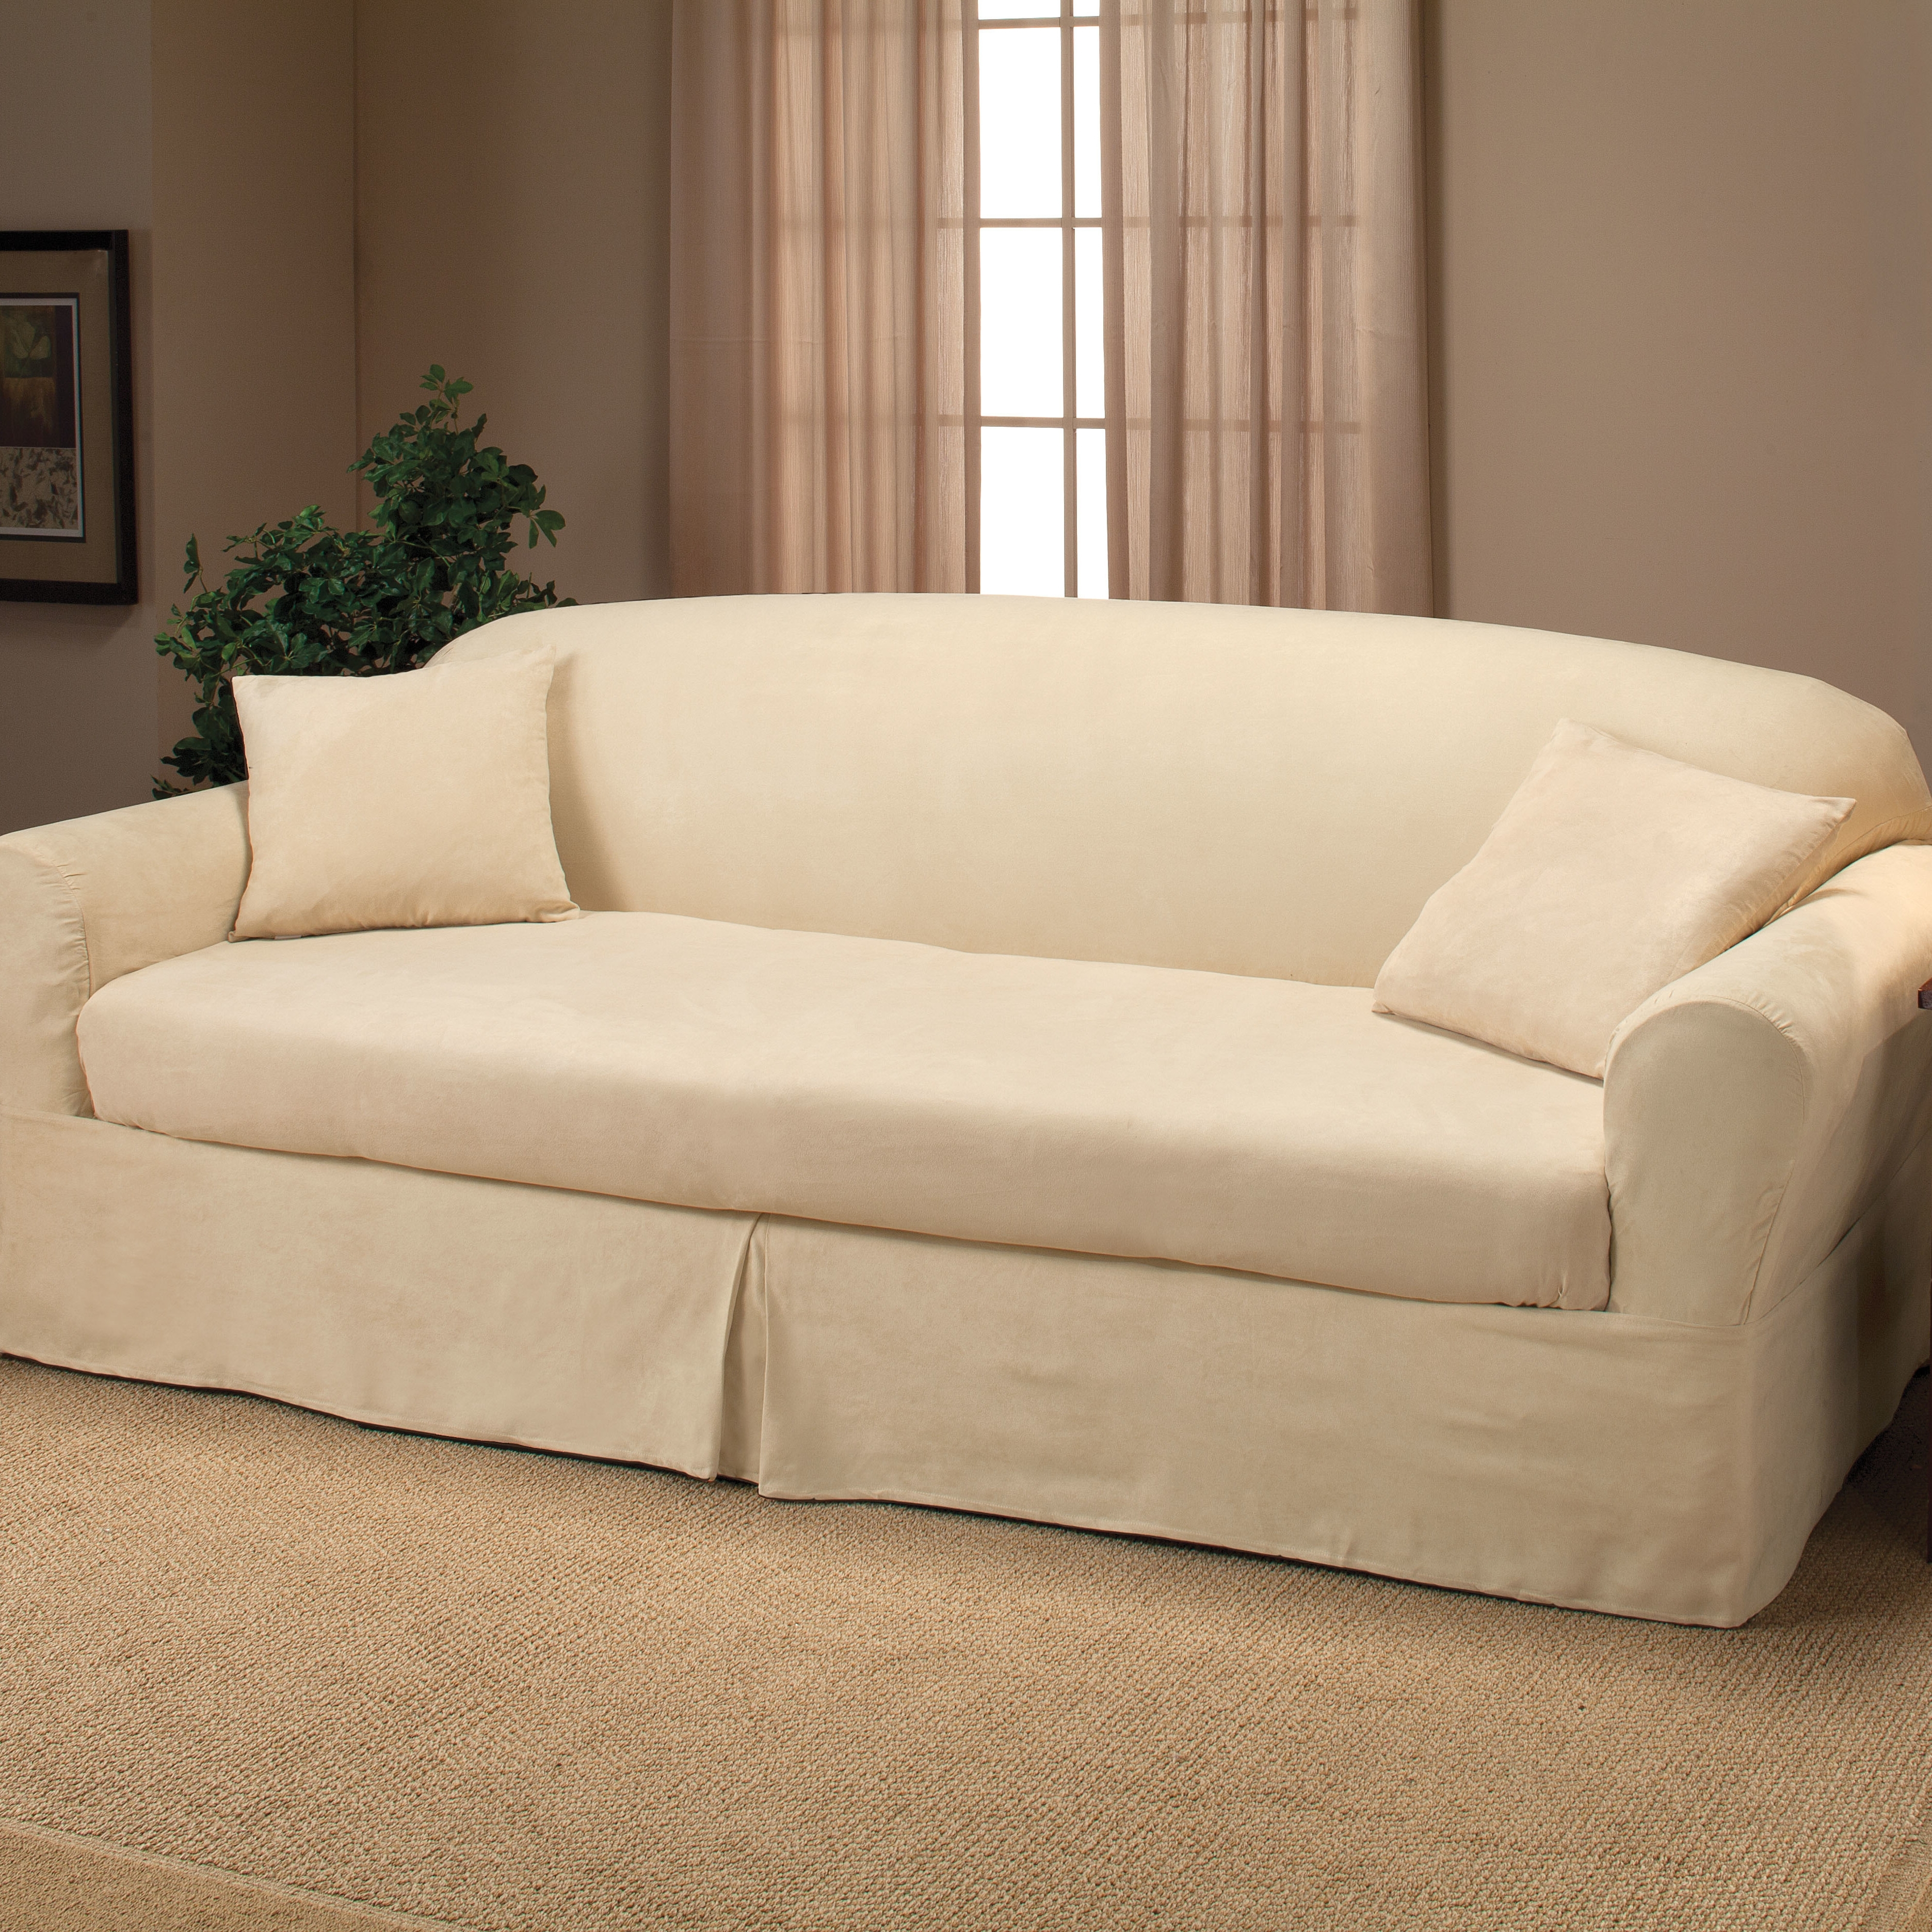 2 Piece Sectional Sofa Slipcovers – Cleanupflorida Inside Glamour Ii 3 Piece Sectionals (Image 1 of 25)